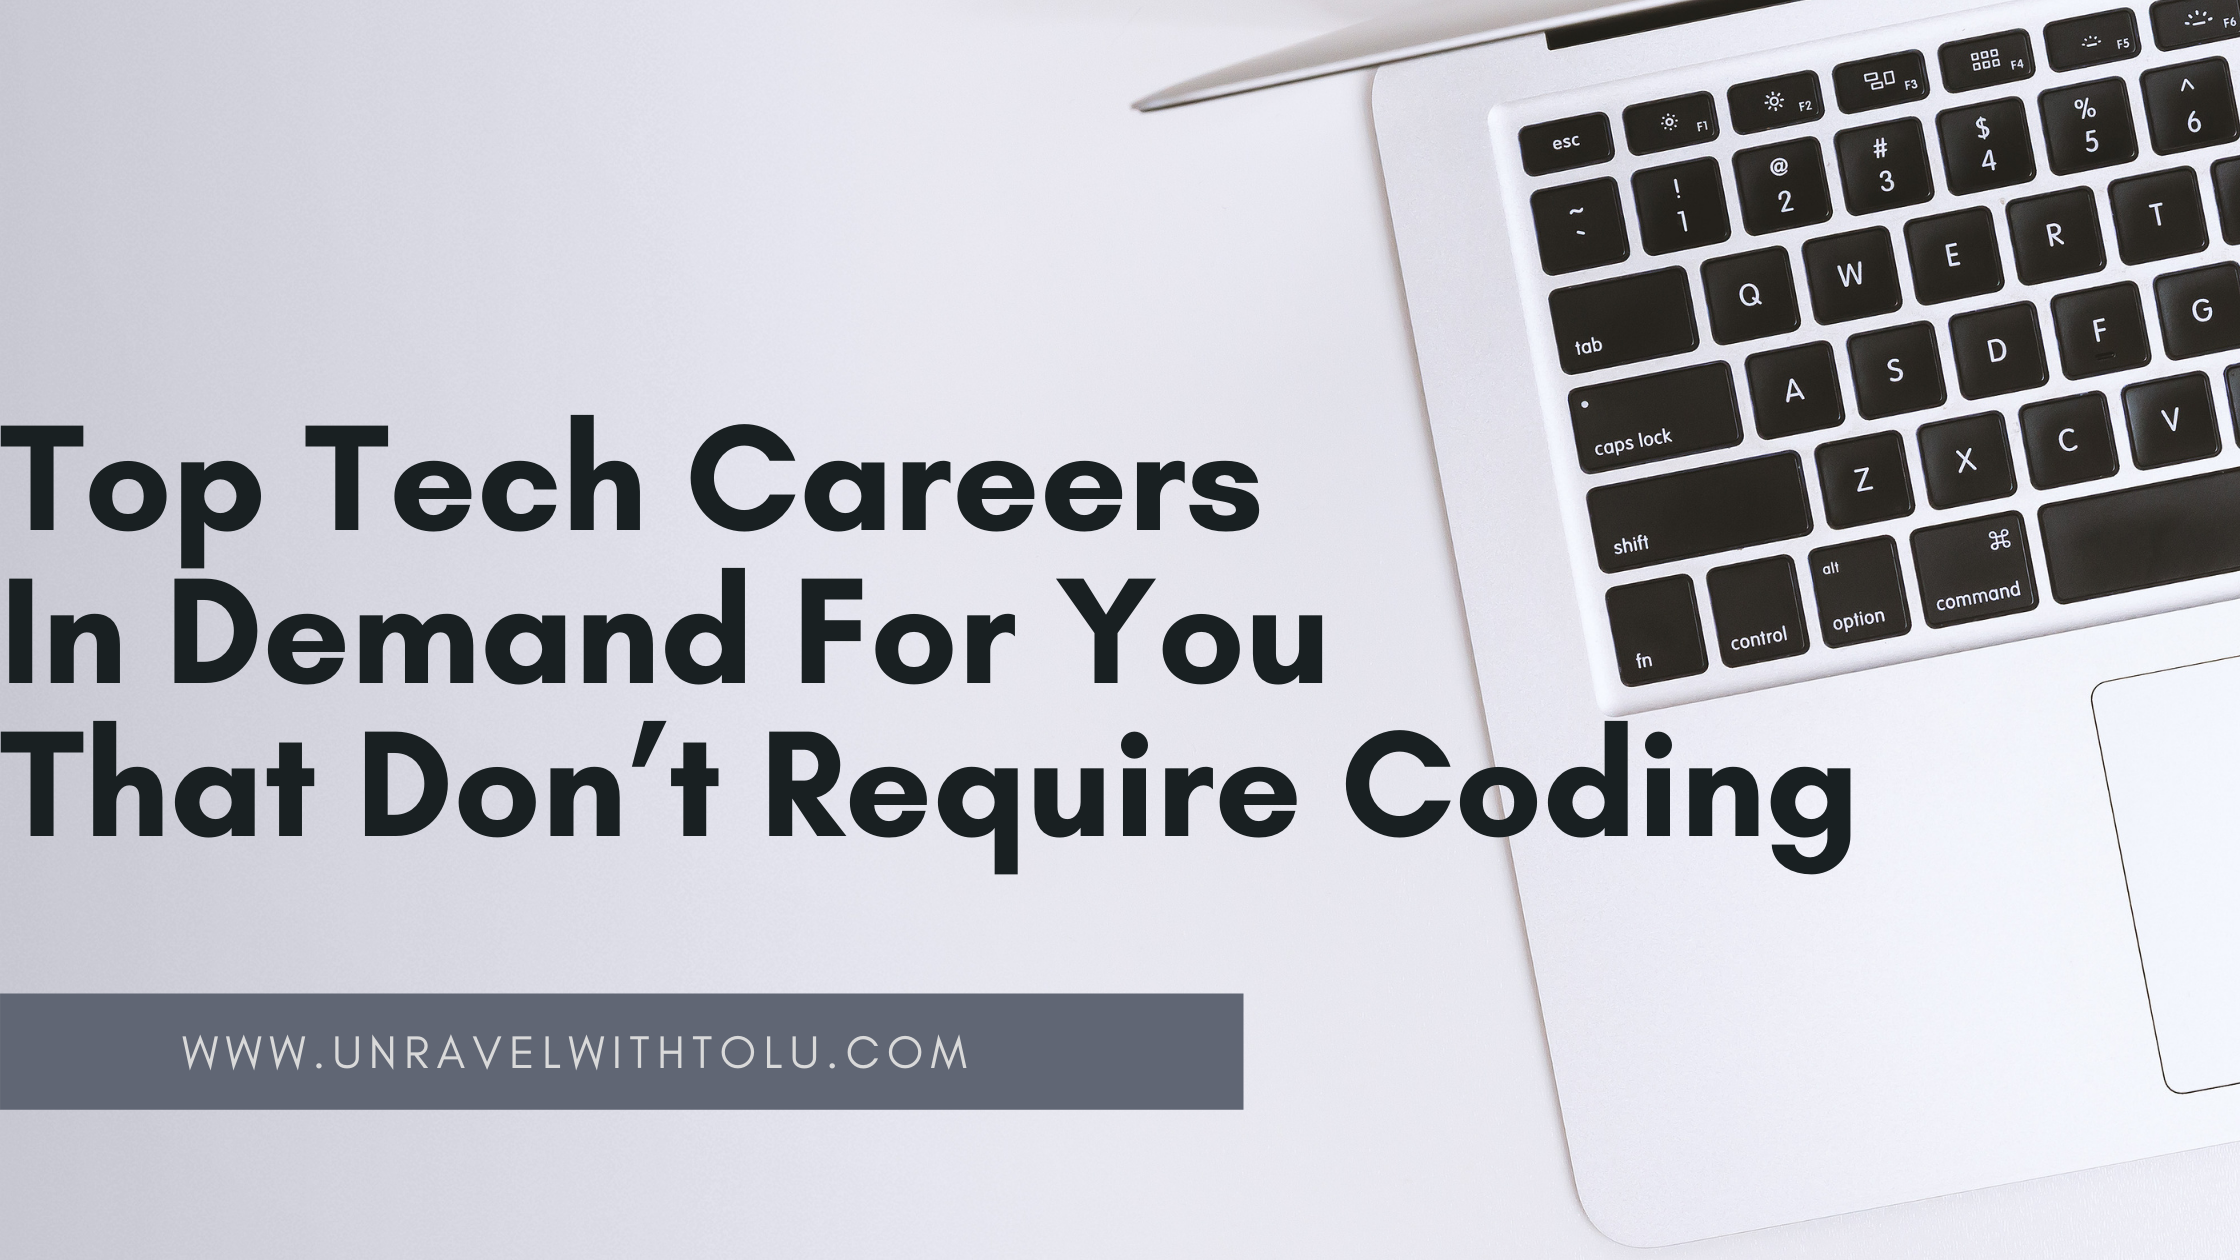 Top Tech Careers In Demand For You That Don't Require Coding